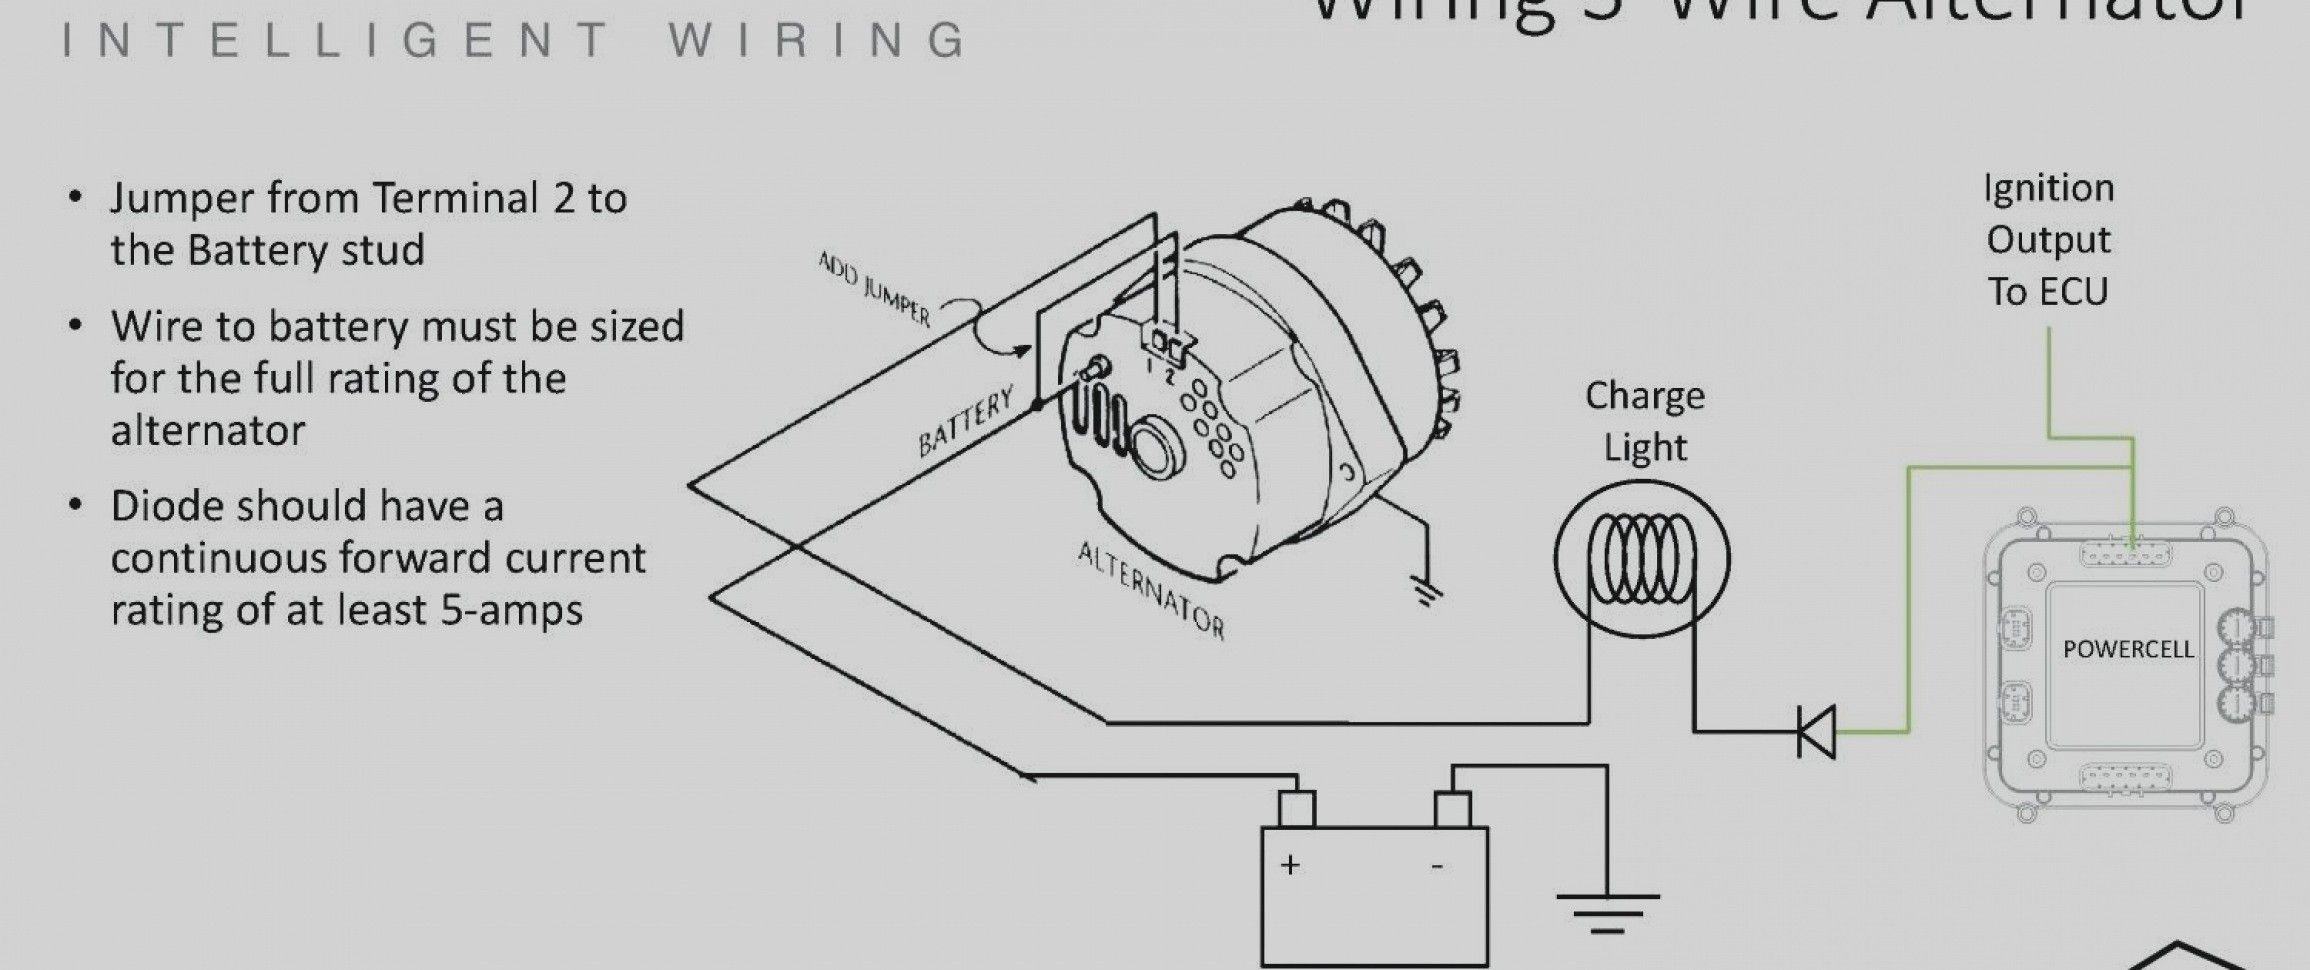 Beautiful Wiring Diagram Vw Alternator #diagrams #